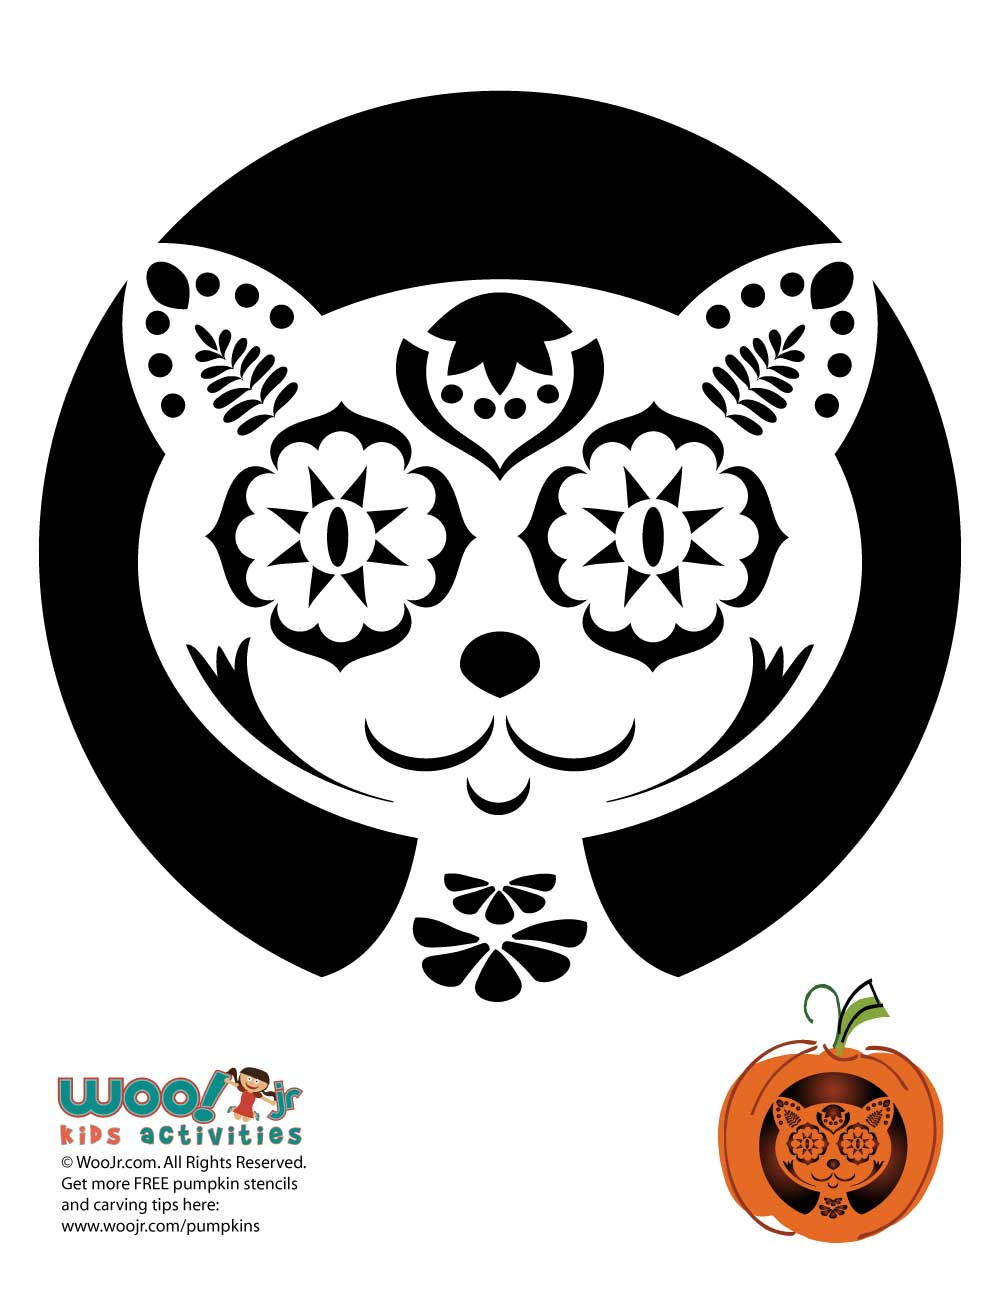 Day of the dead cat carving pattern woo jr kids activities